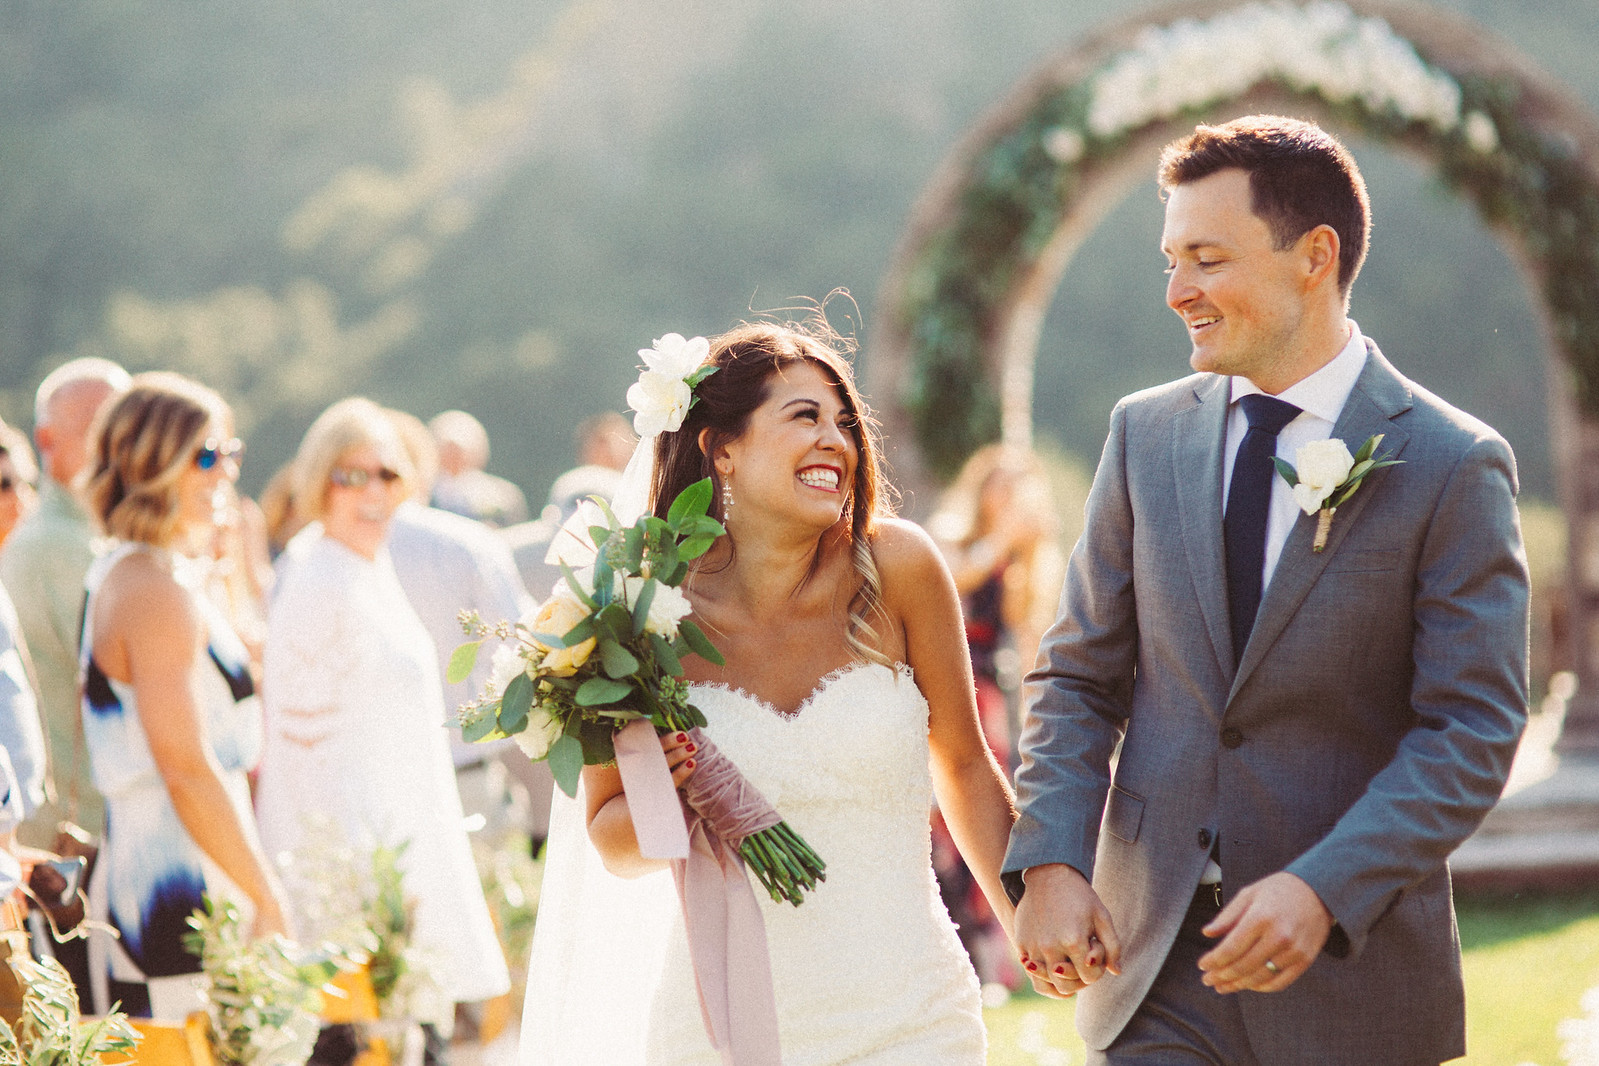 just married epiphany bride in justin alexander